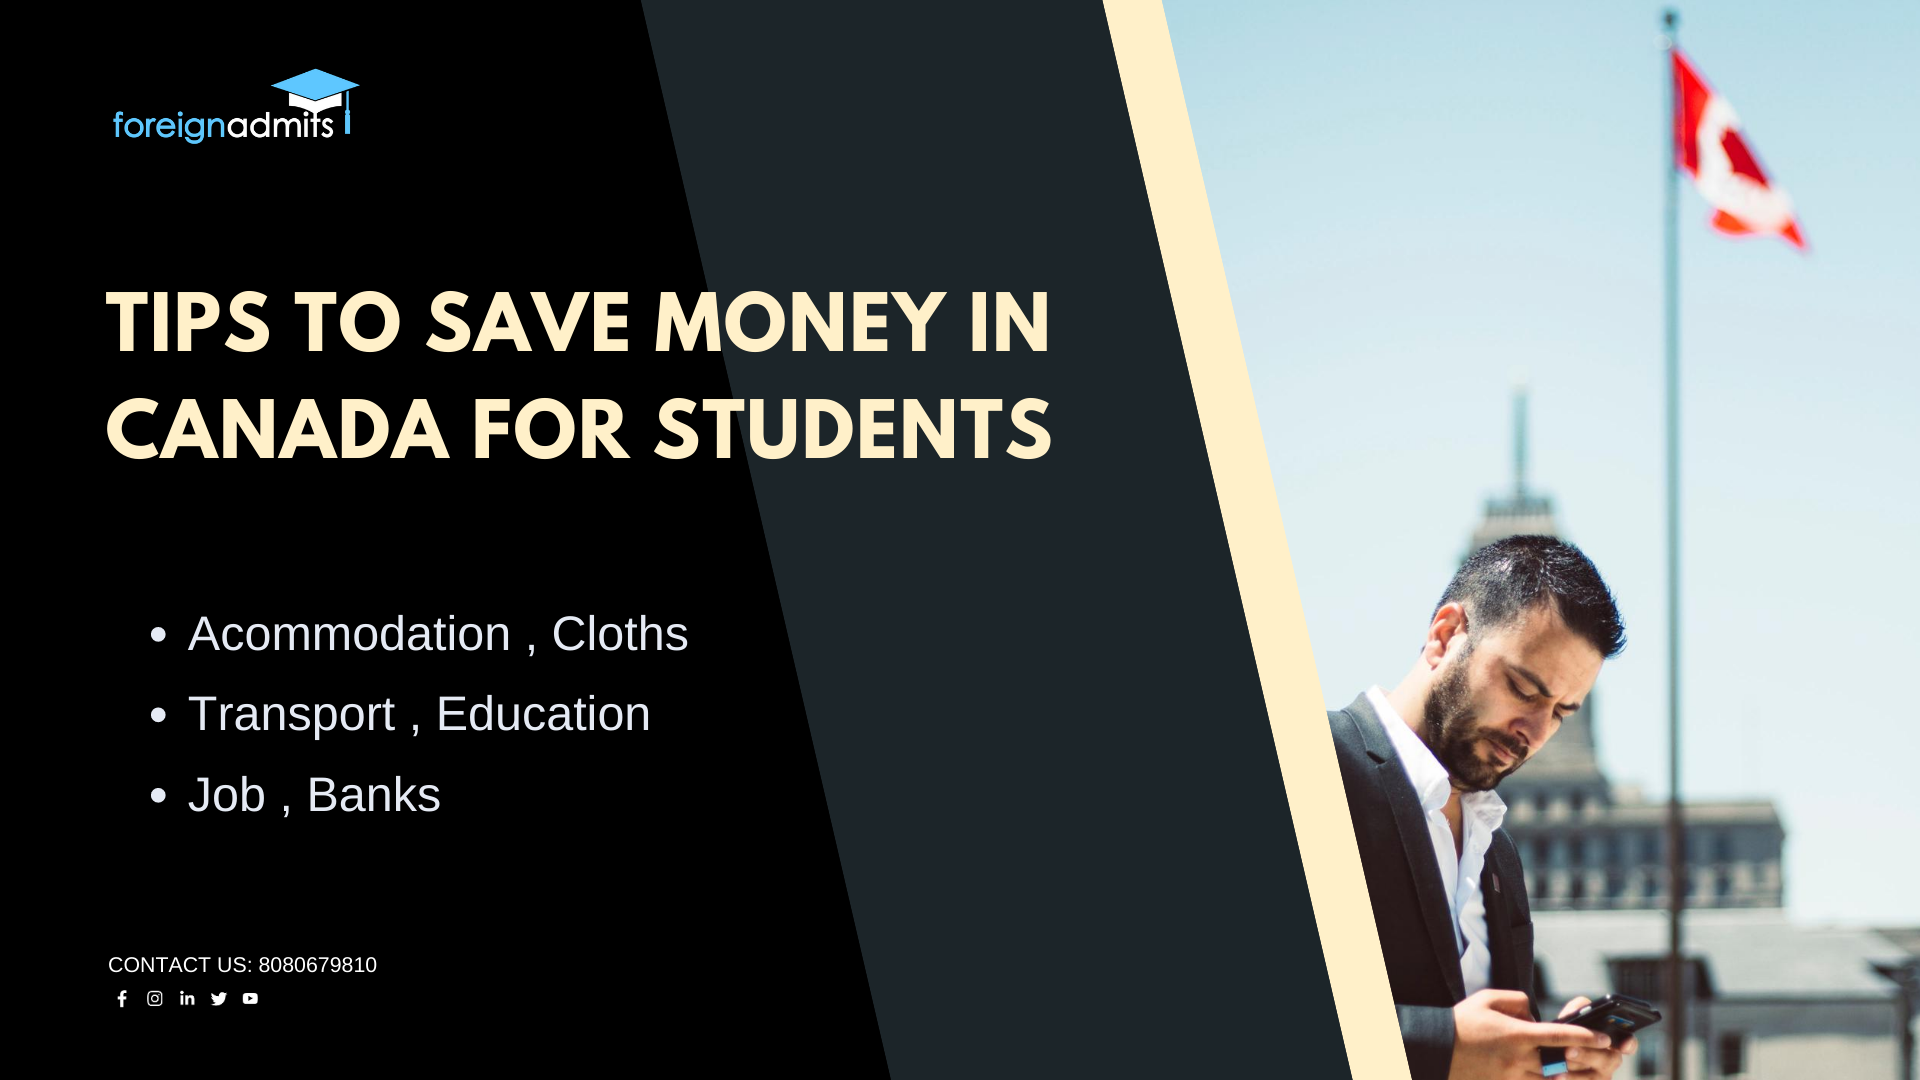 Tips to save money in canada for students